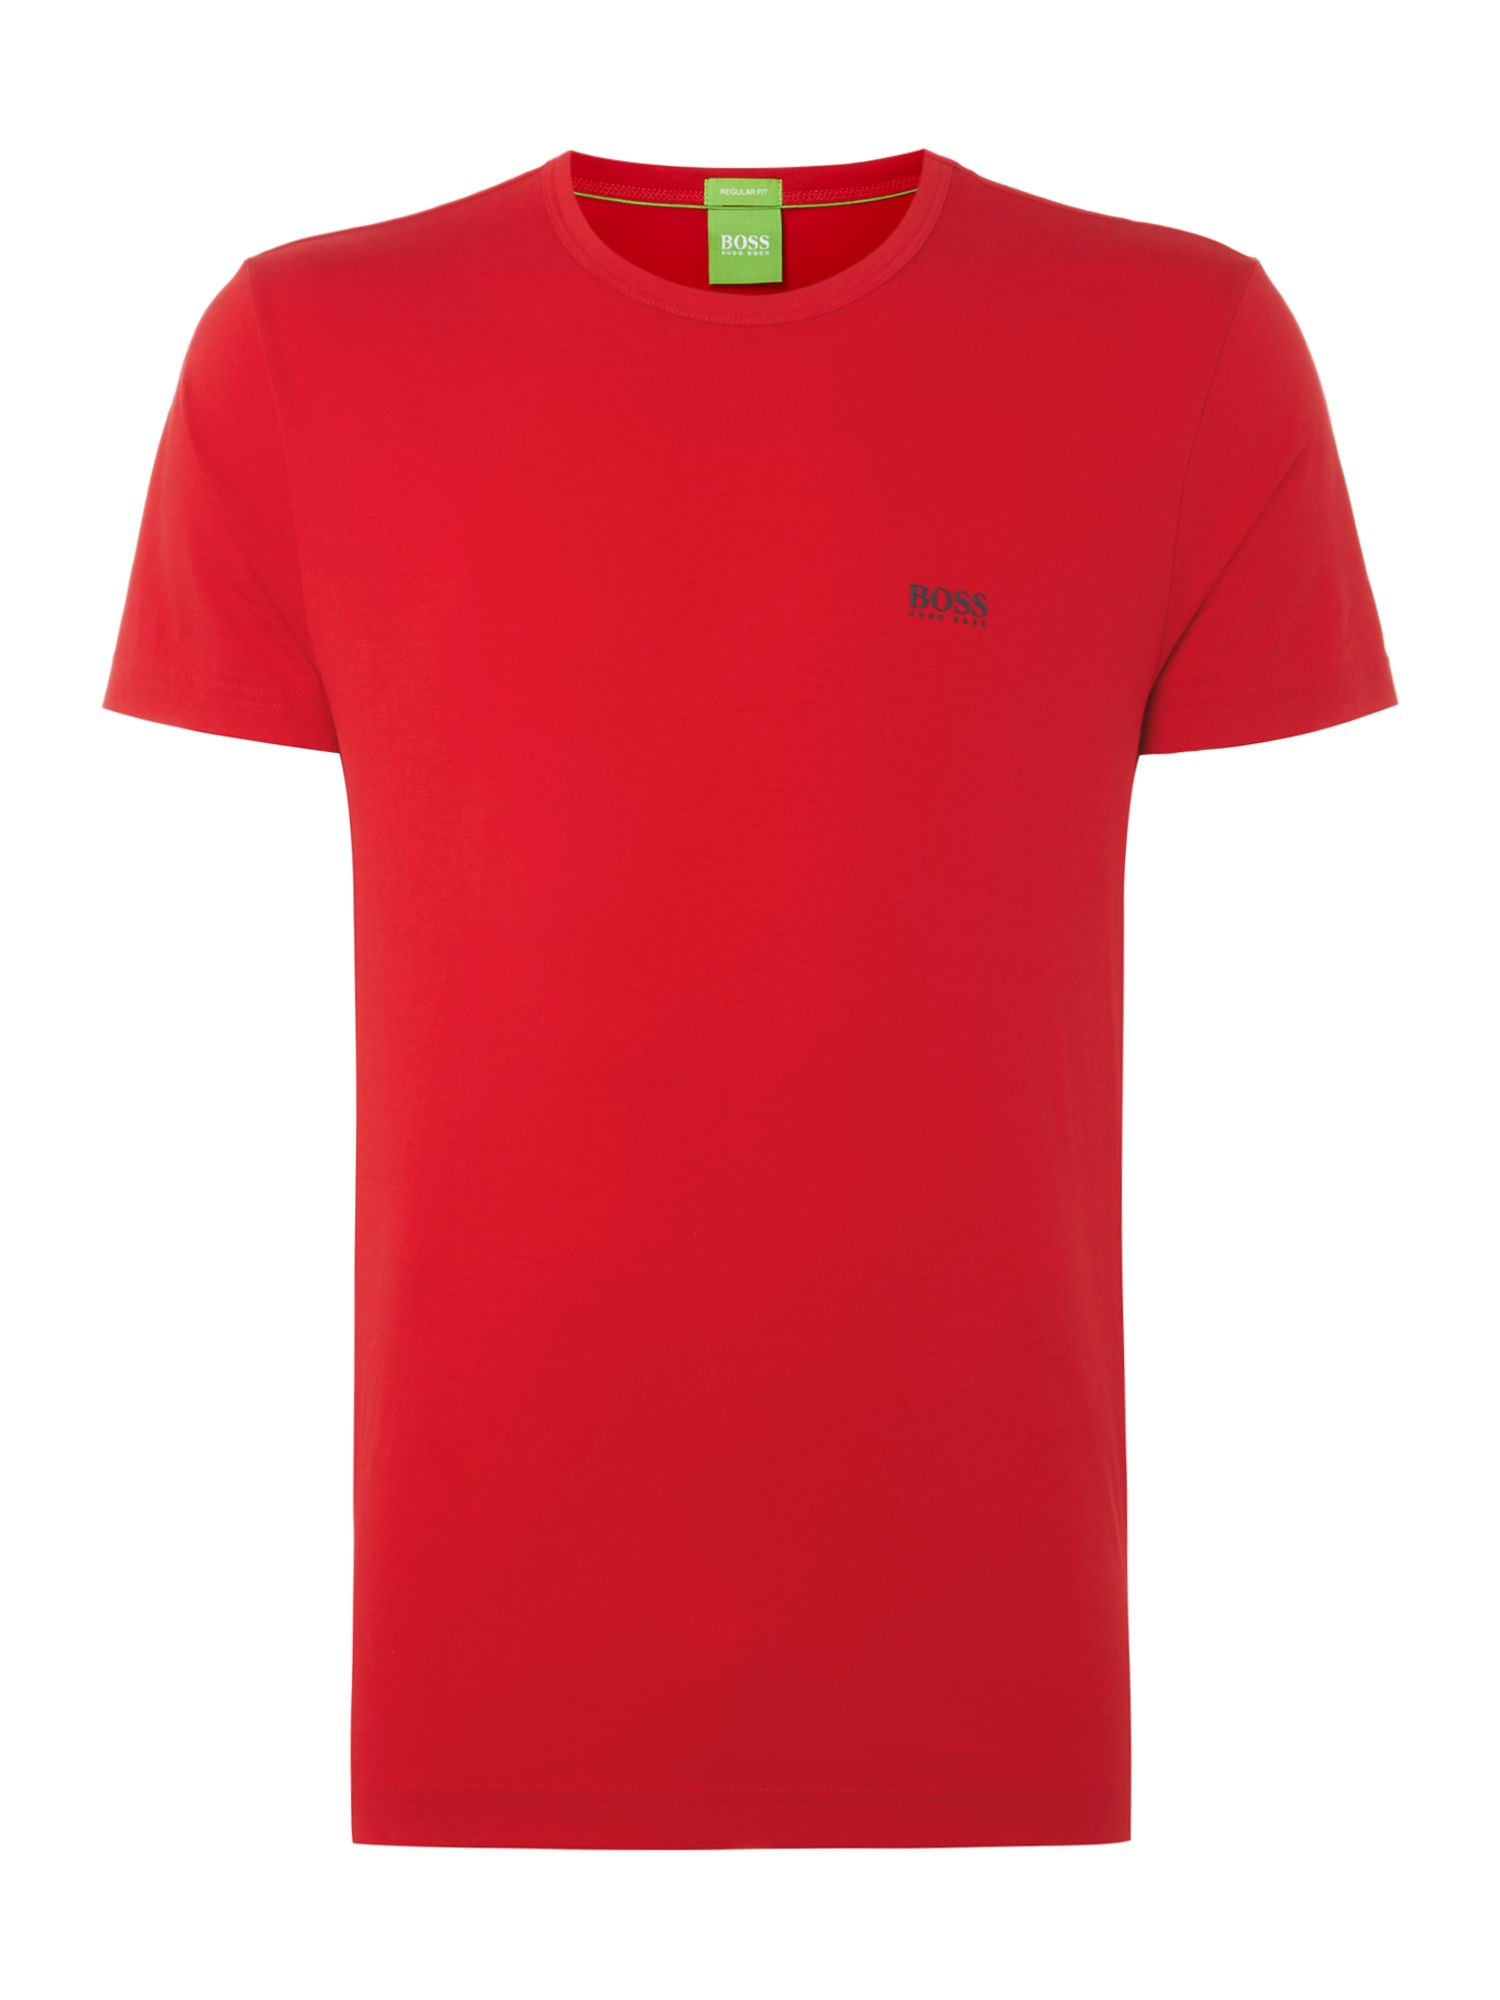 Men's Hugo Boss Crew Neck Regular Fit T-Shirt, Red